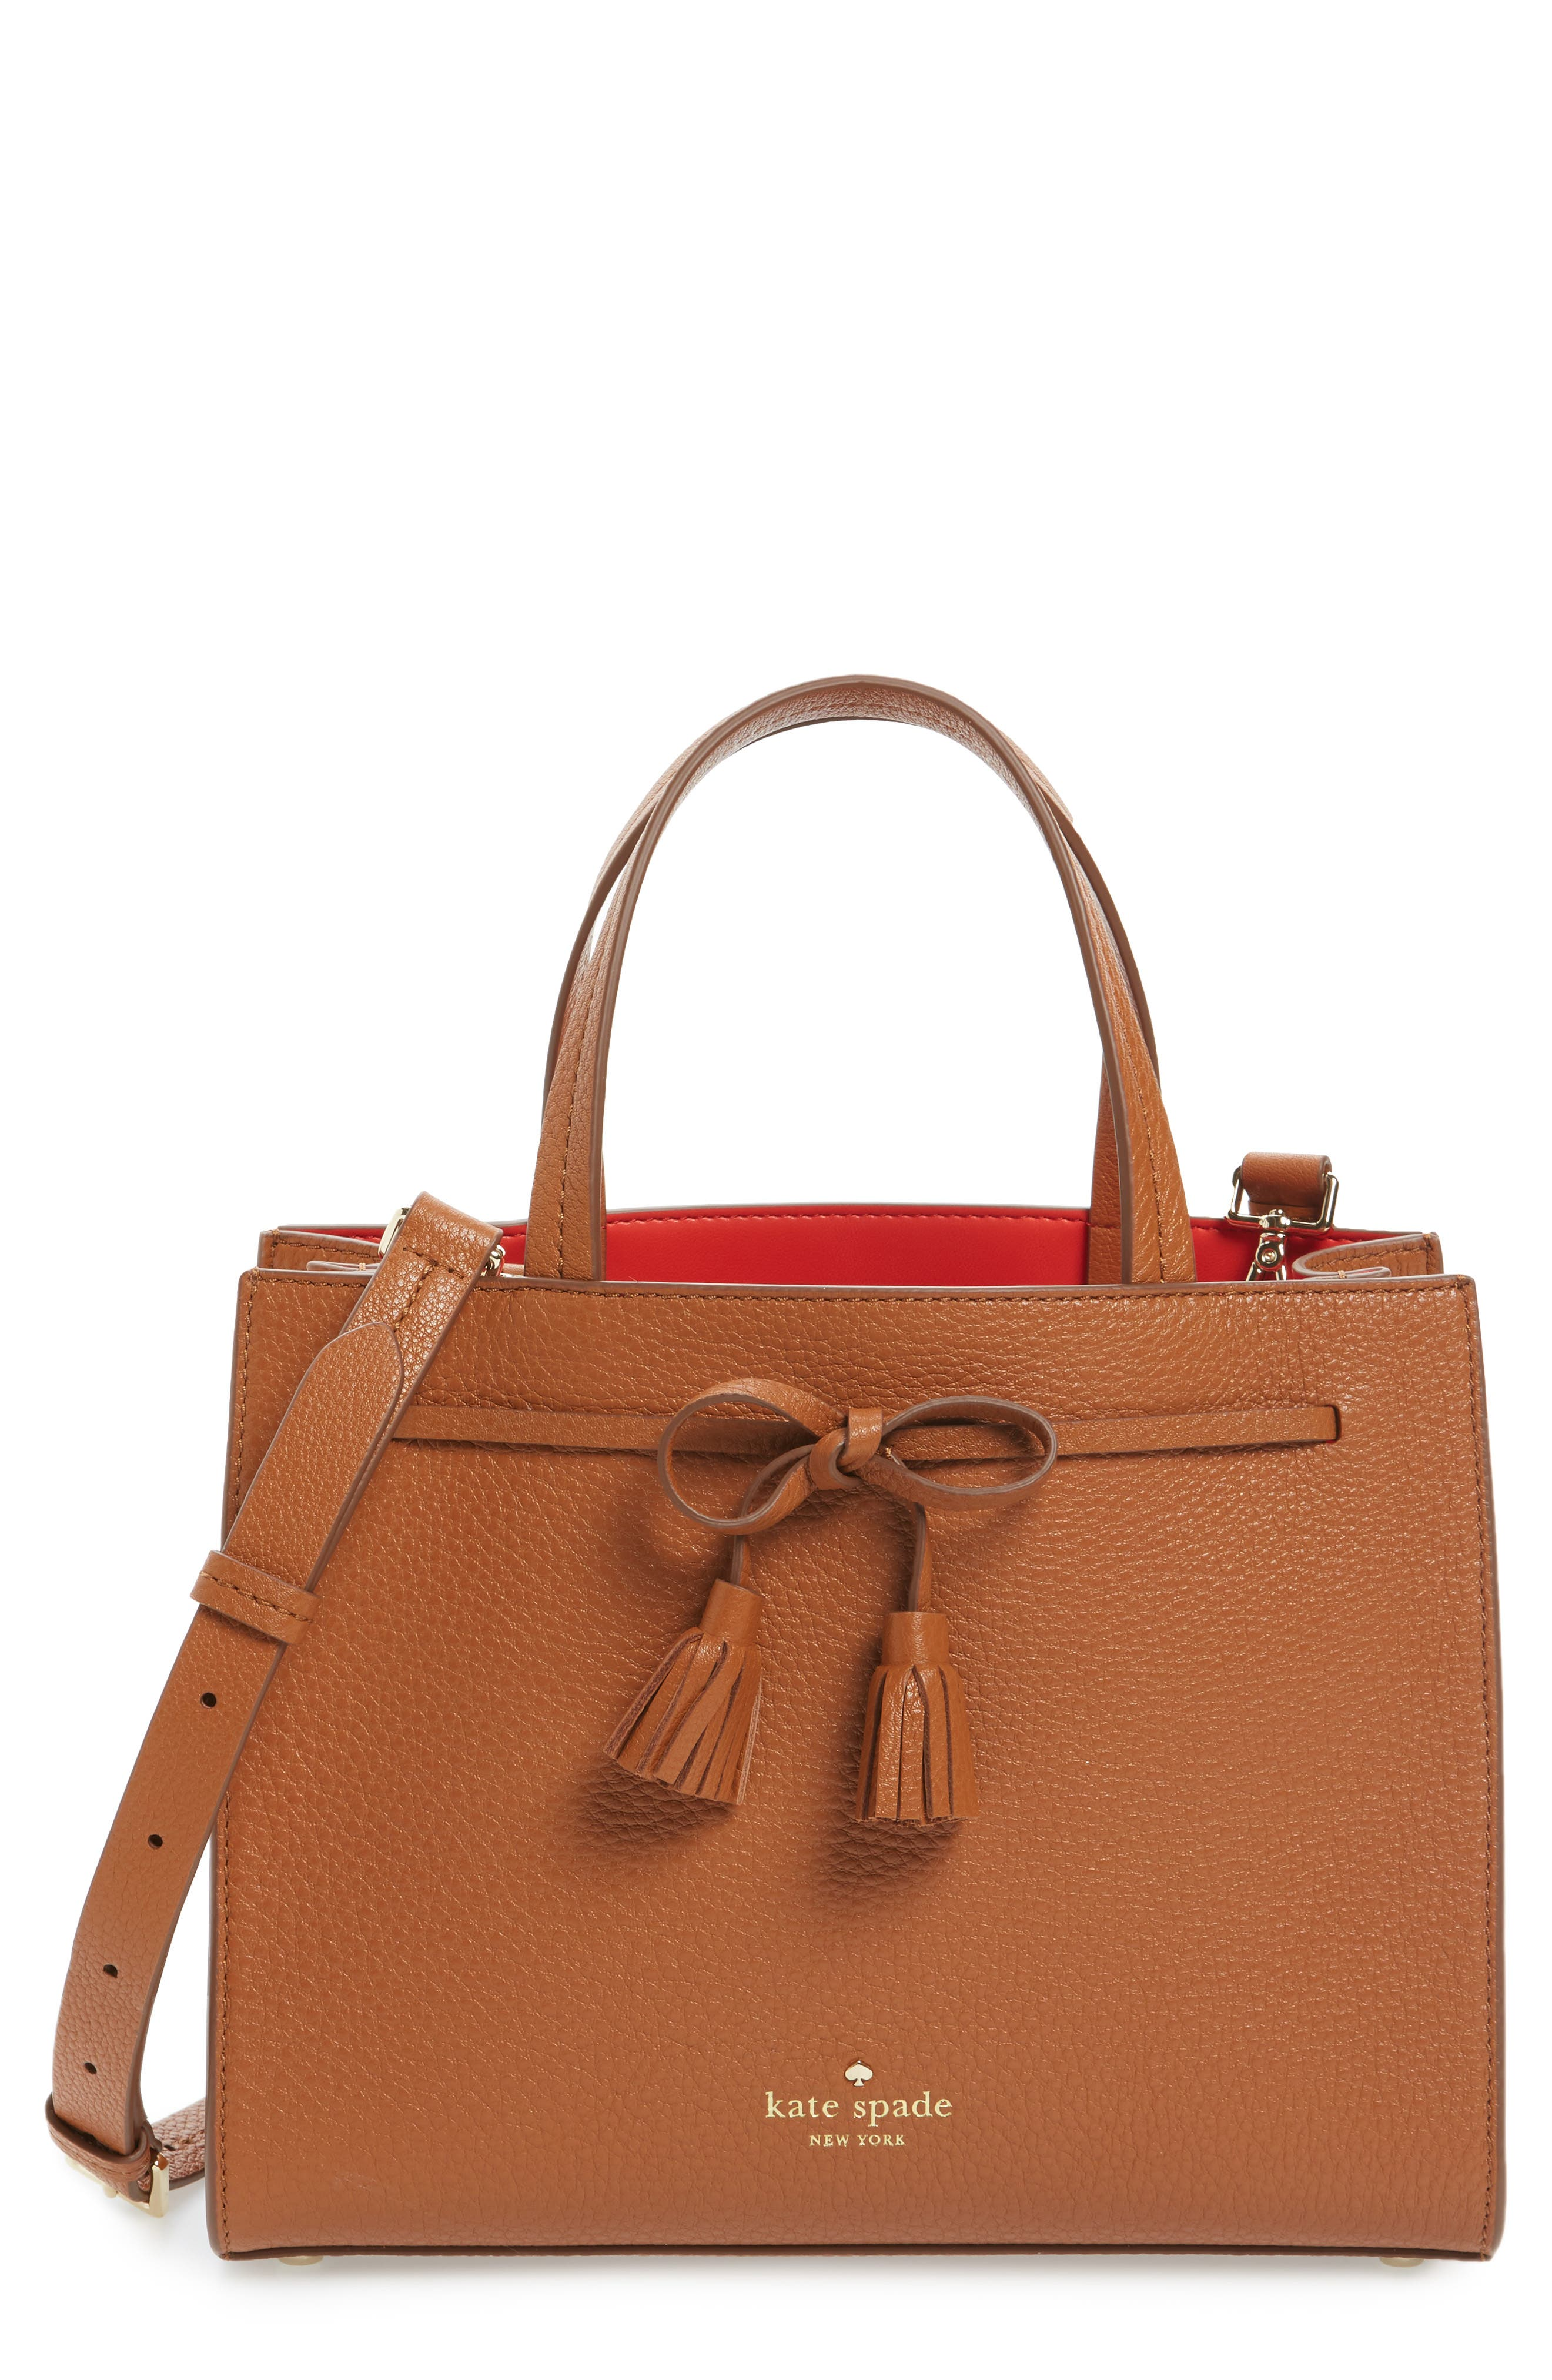 Main Image - kate spade new york hayes street small isobel leather satchel